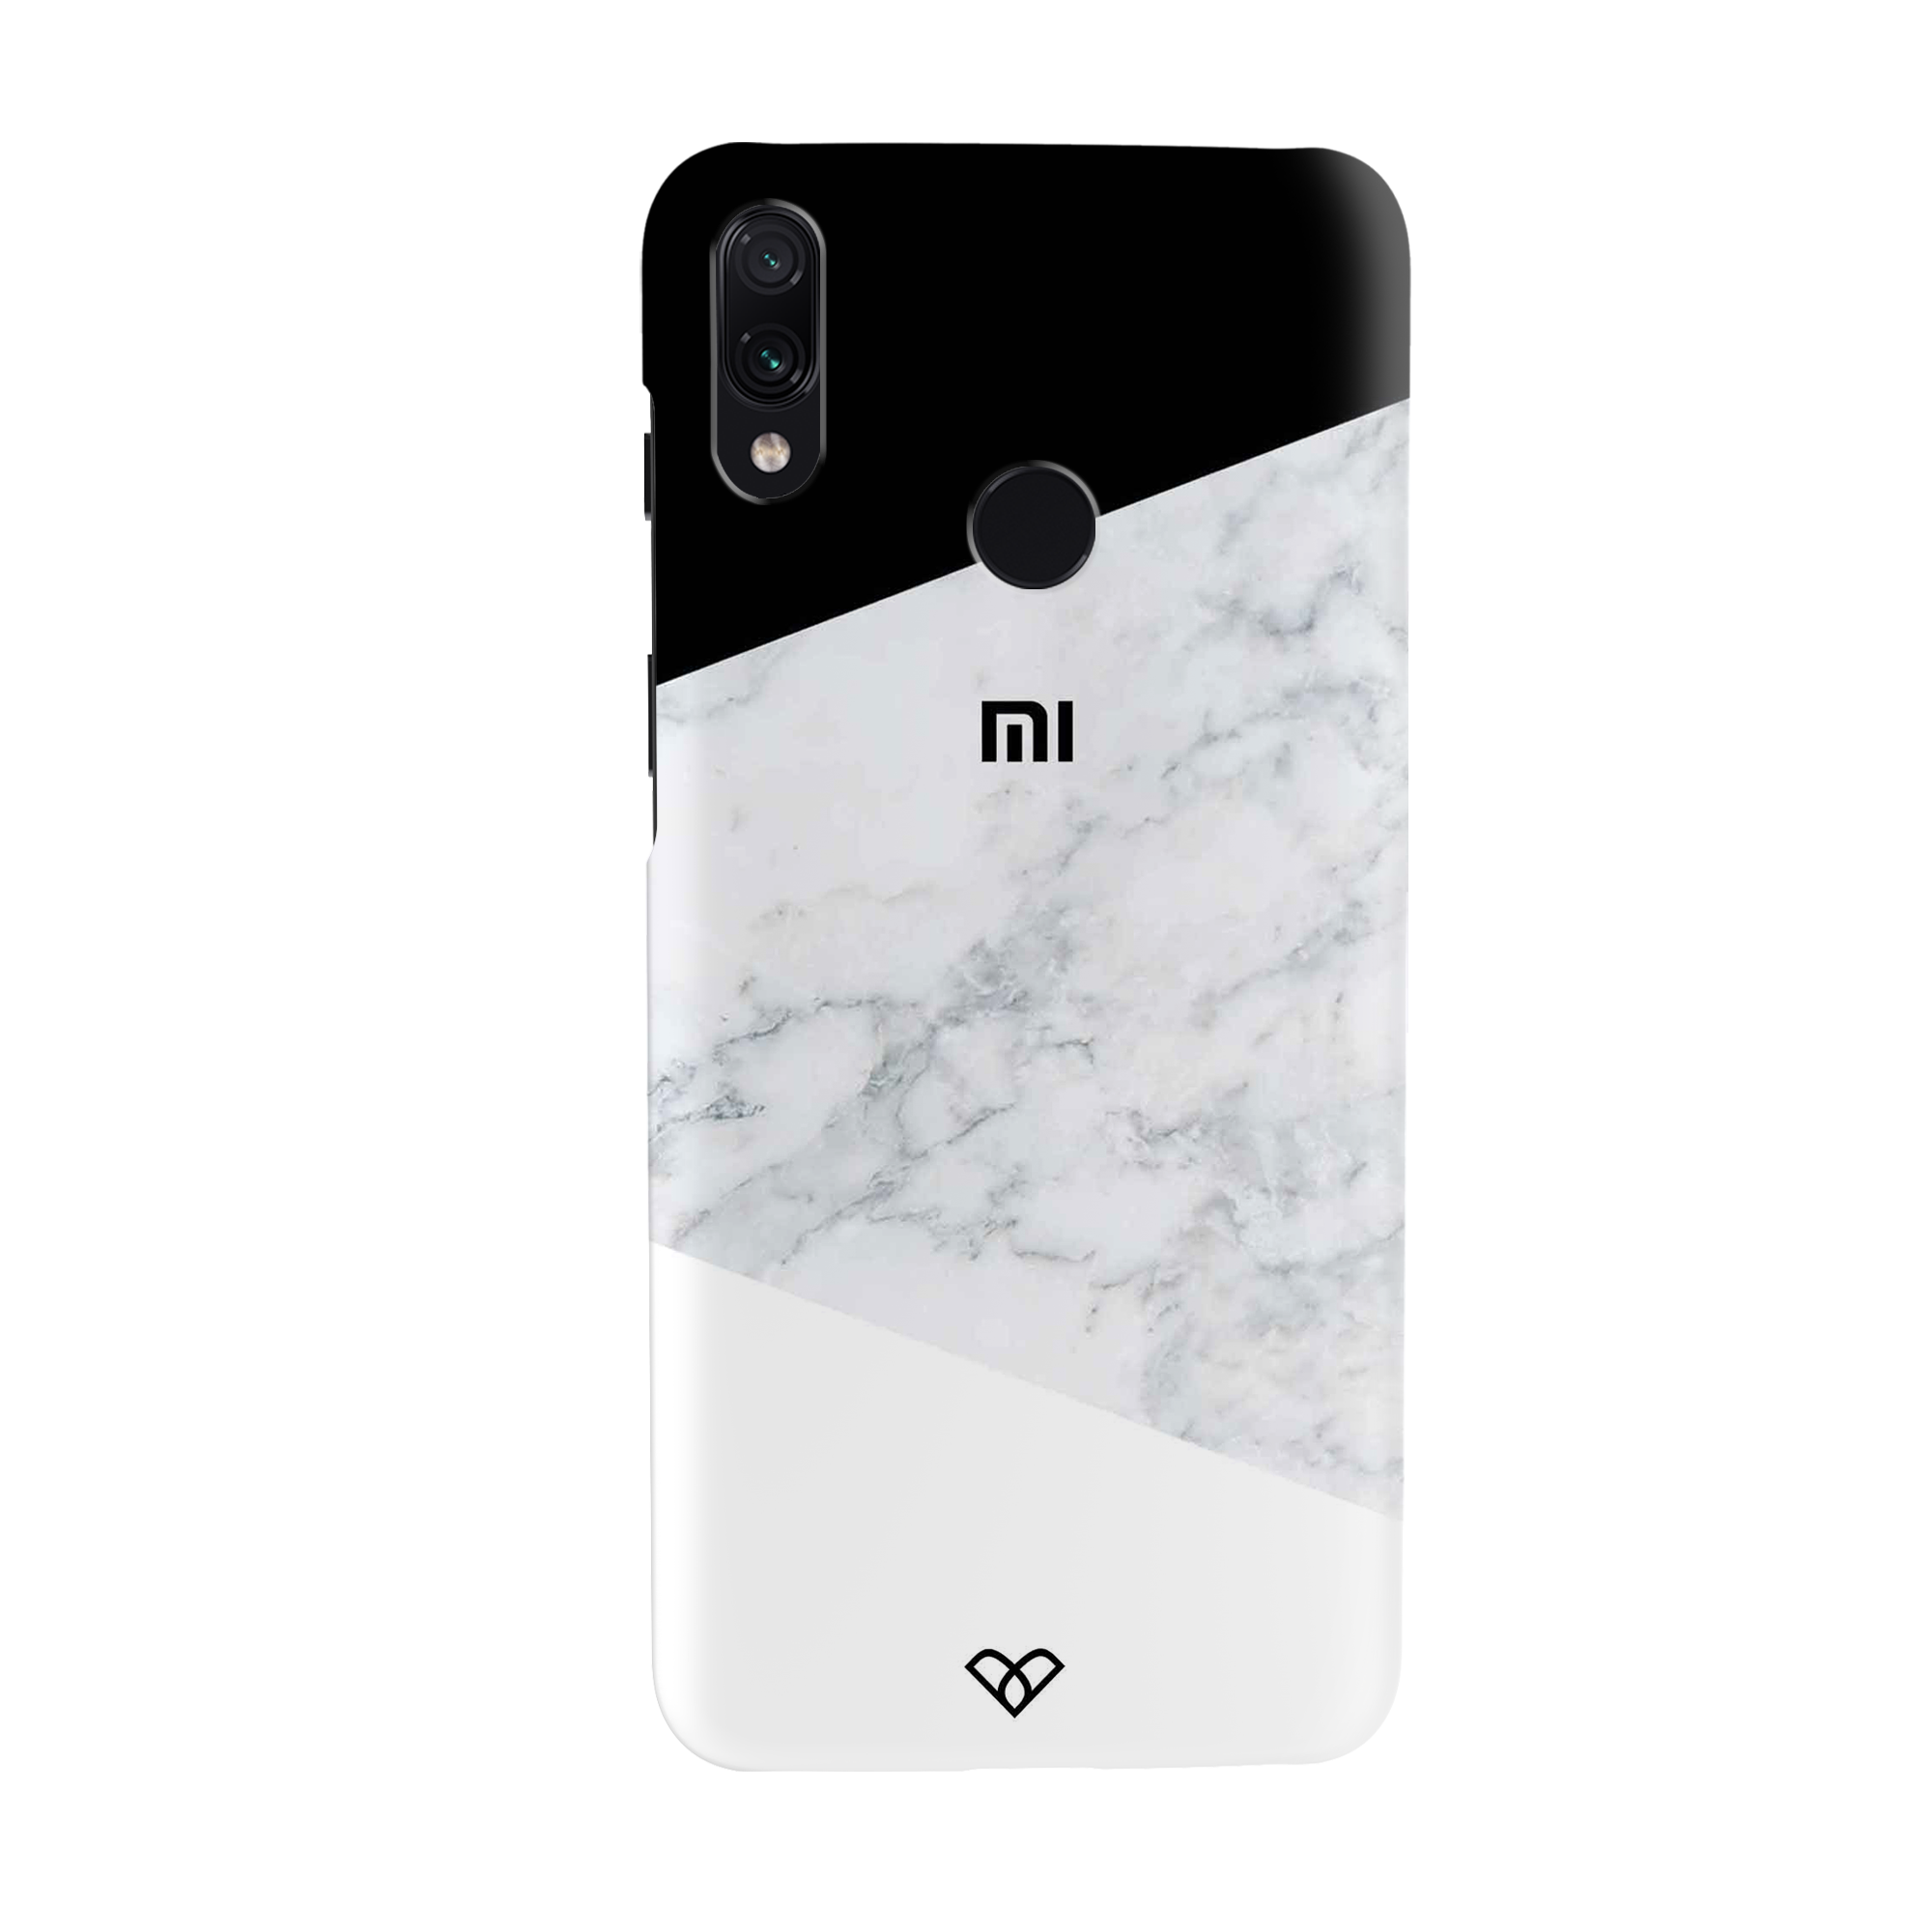 Geometric White Marble Slim Case And Cover For Redmi Note 7 Pro